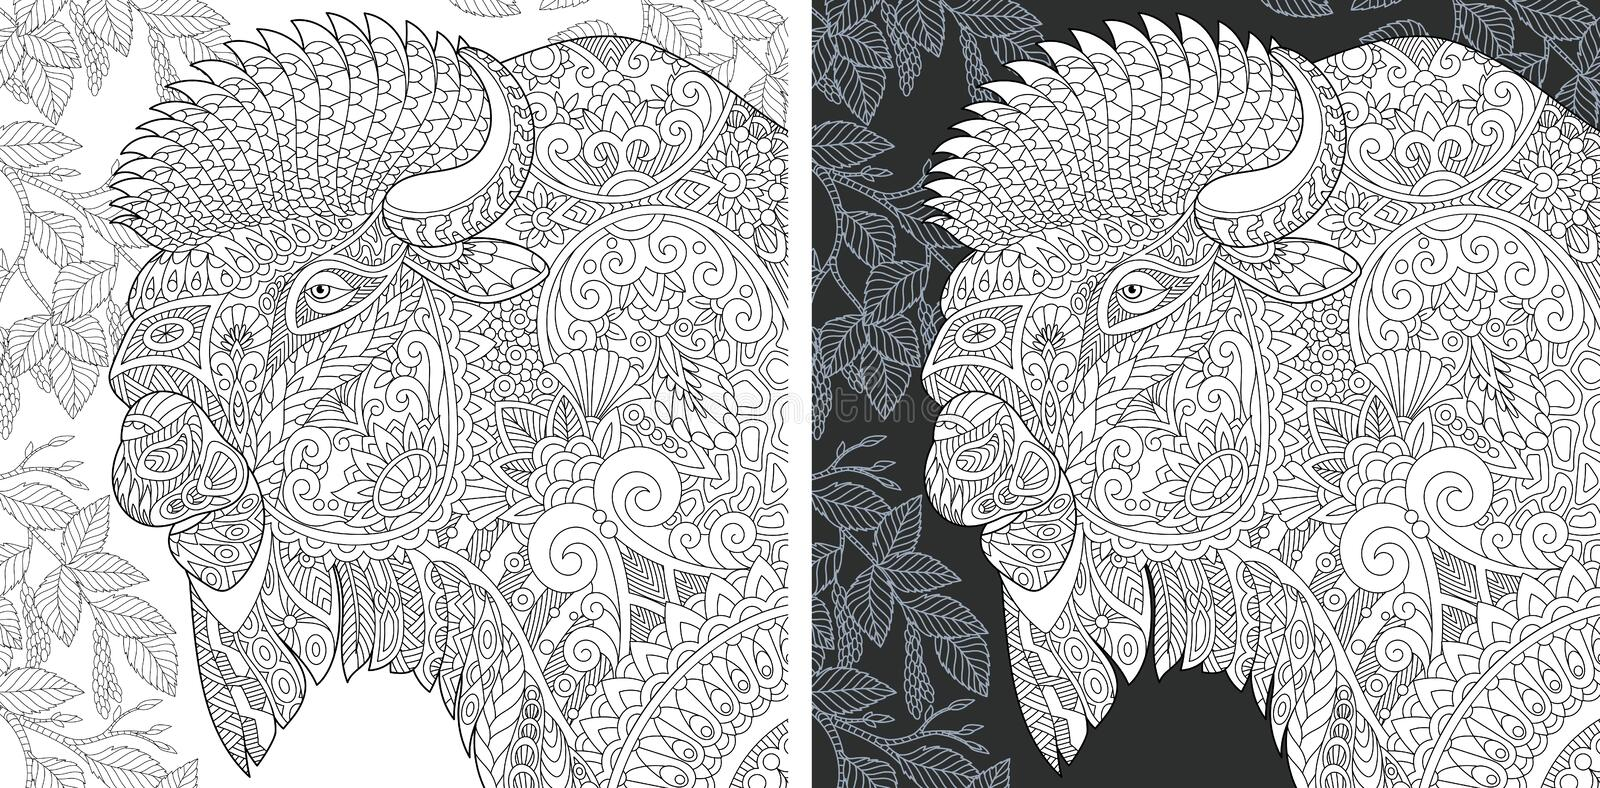 Coloring page with bison. Coloring Page. Coloring Book. Colouring picture with Bison drawn in zentangle style. Antistress freehand sketch drawing. Vector royalty free illustration